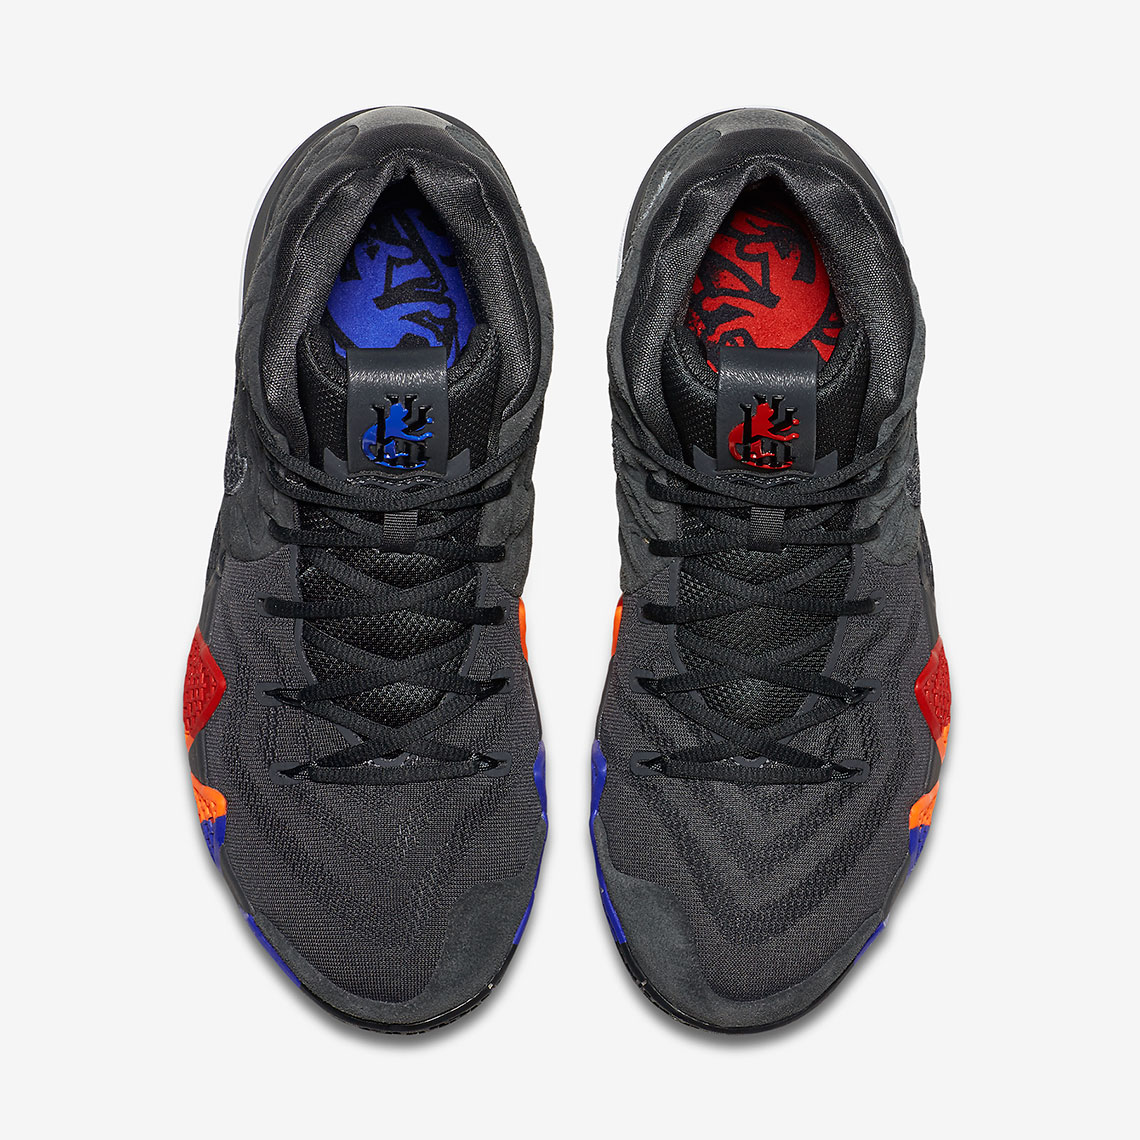 kyrie 4 year of the monkey for sale